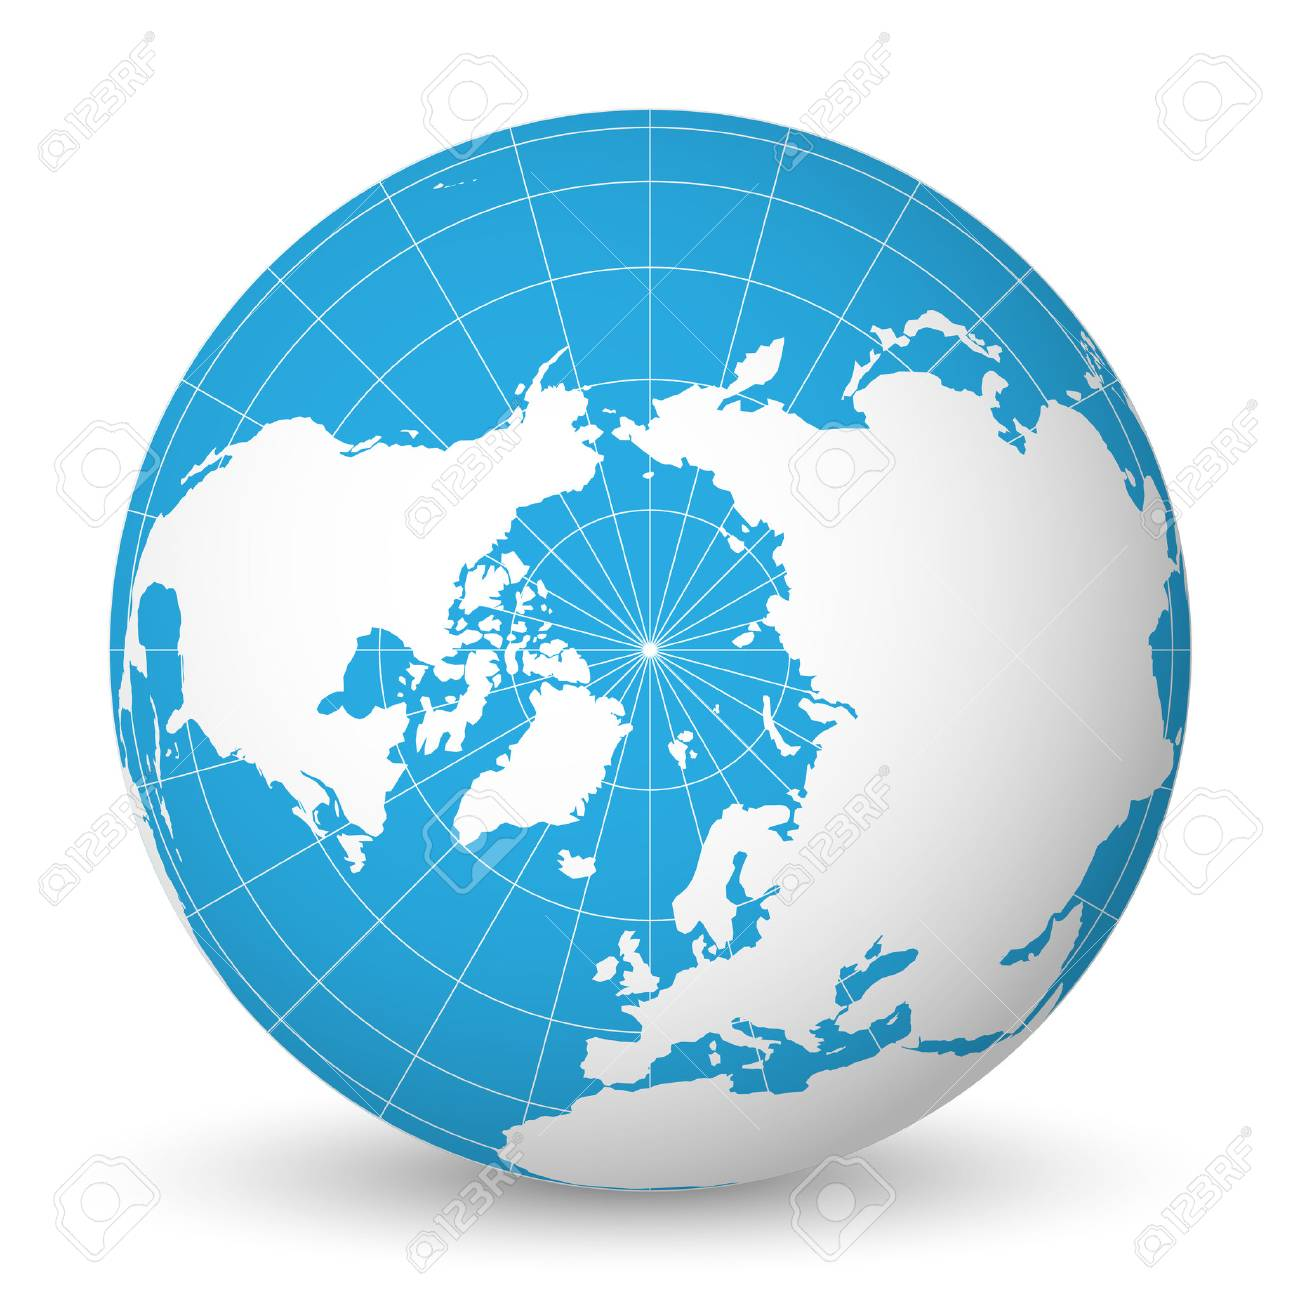 Earth globe with green world map and blue seas and oceans focused..